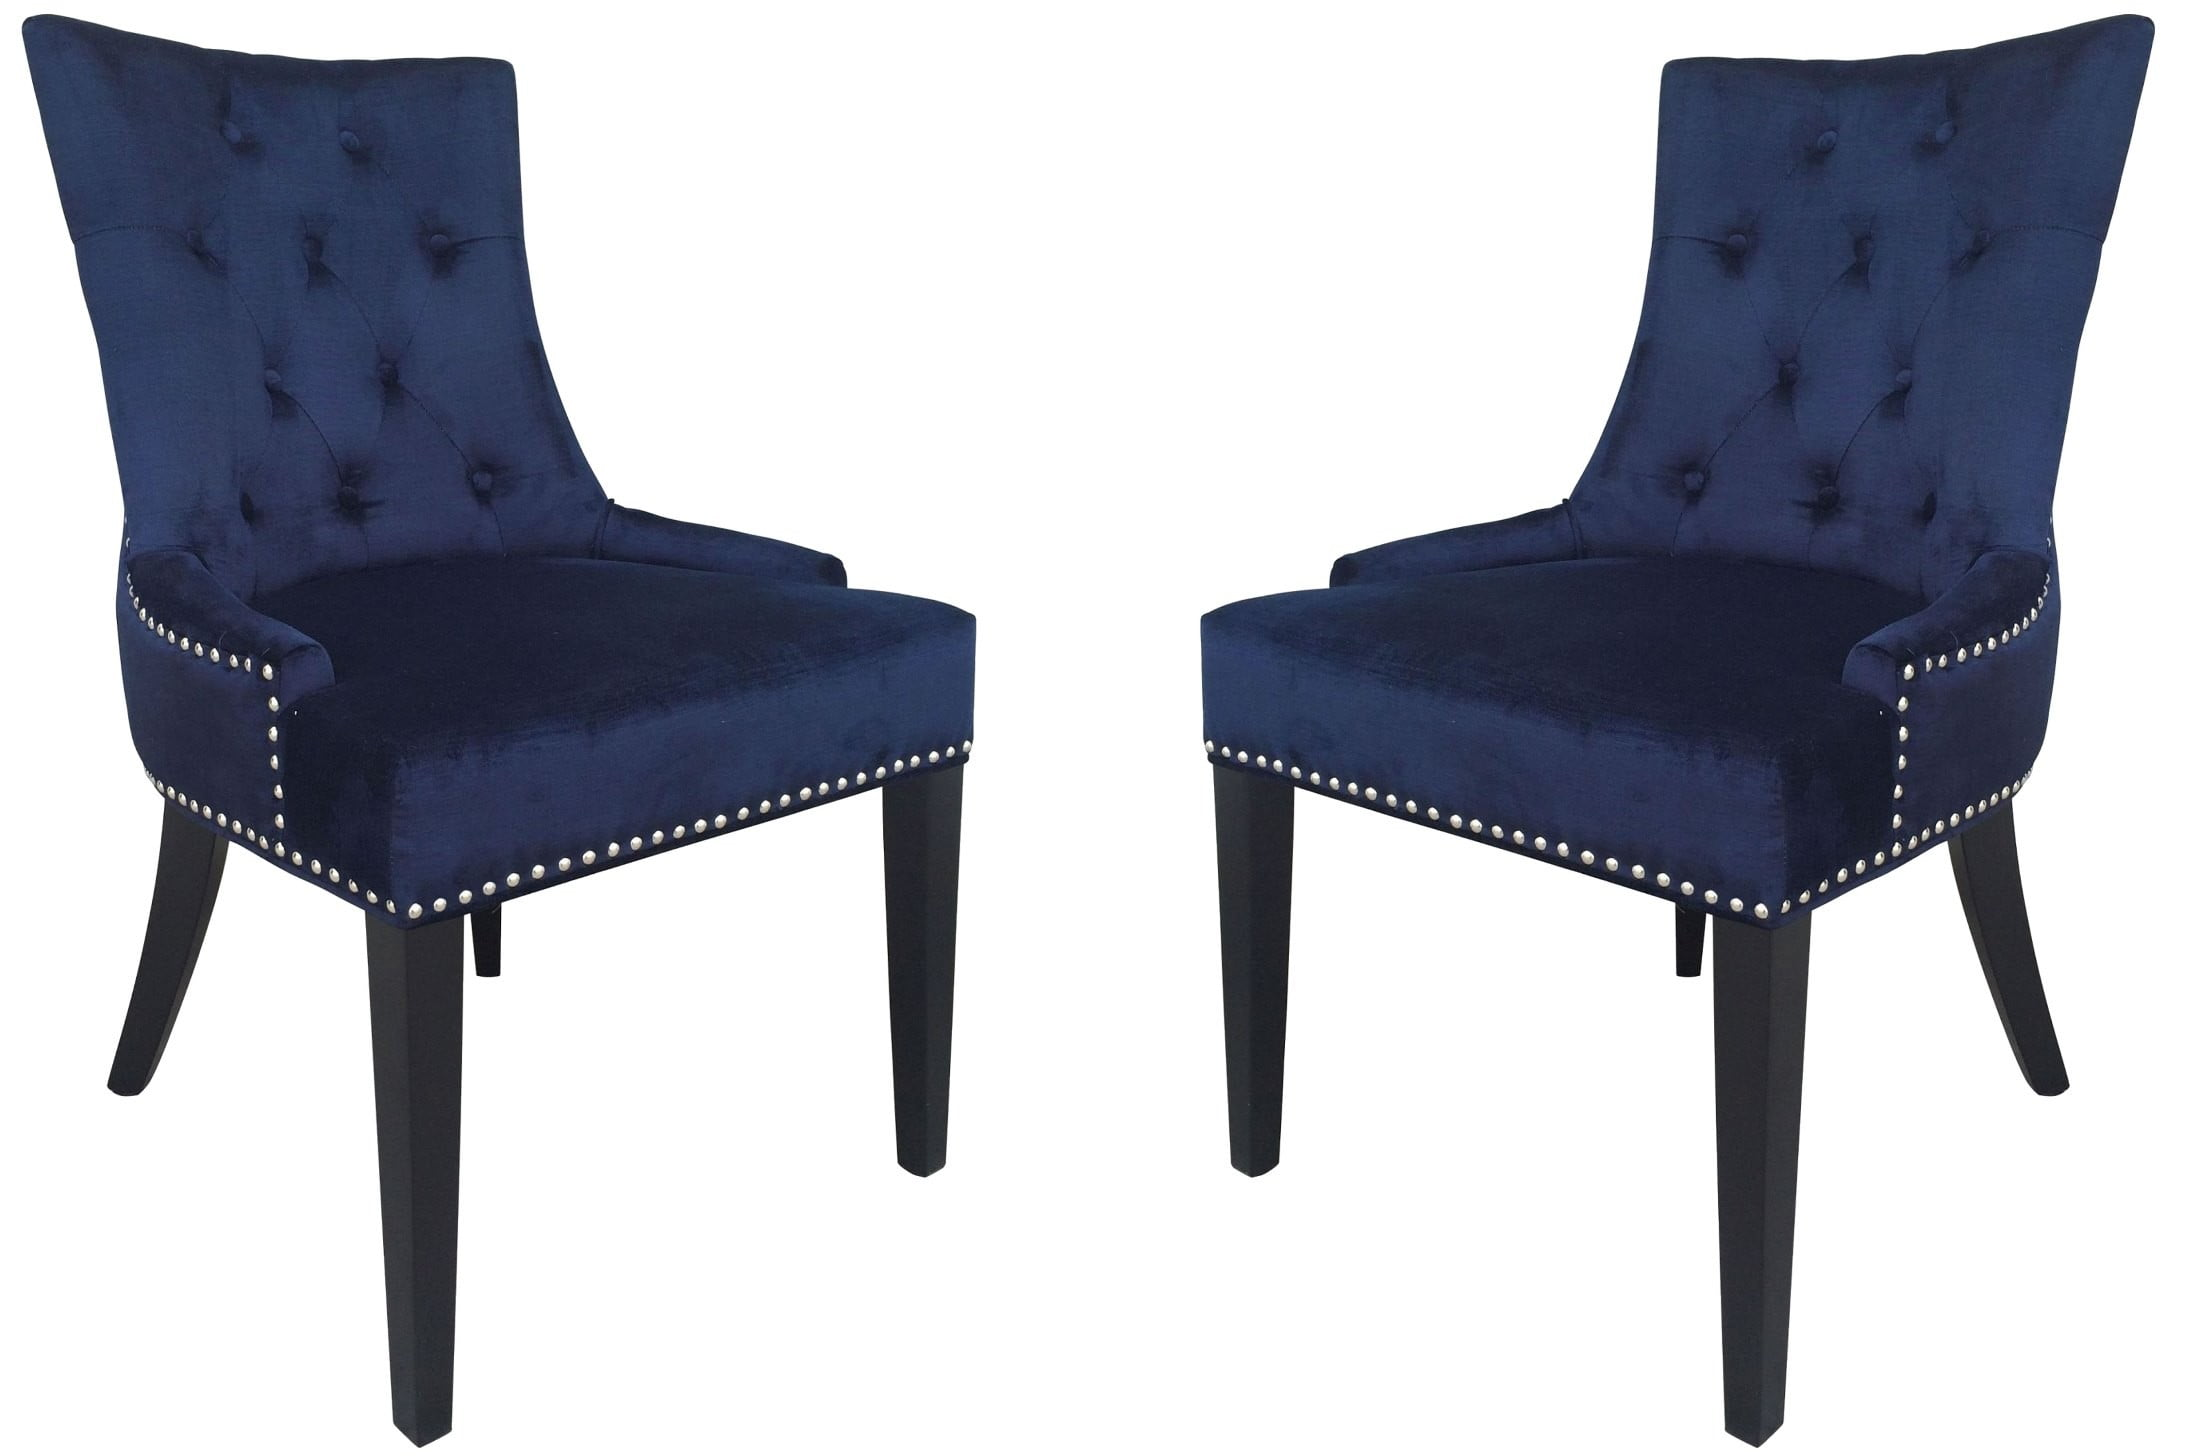 Navy Dining Room Chairs Uptown Navy Velvet Dining Chair Set Of 2 From Tov D30